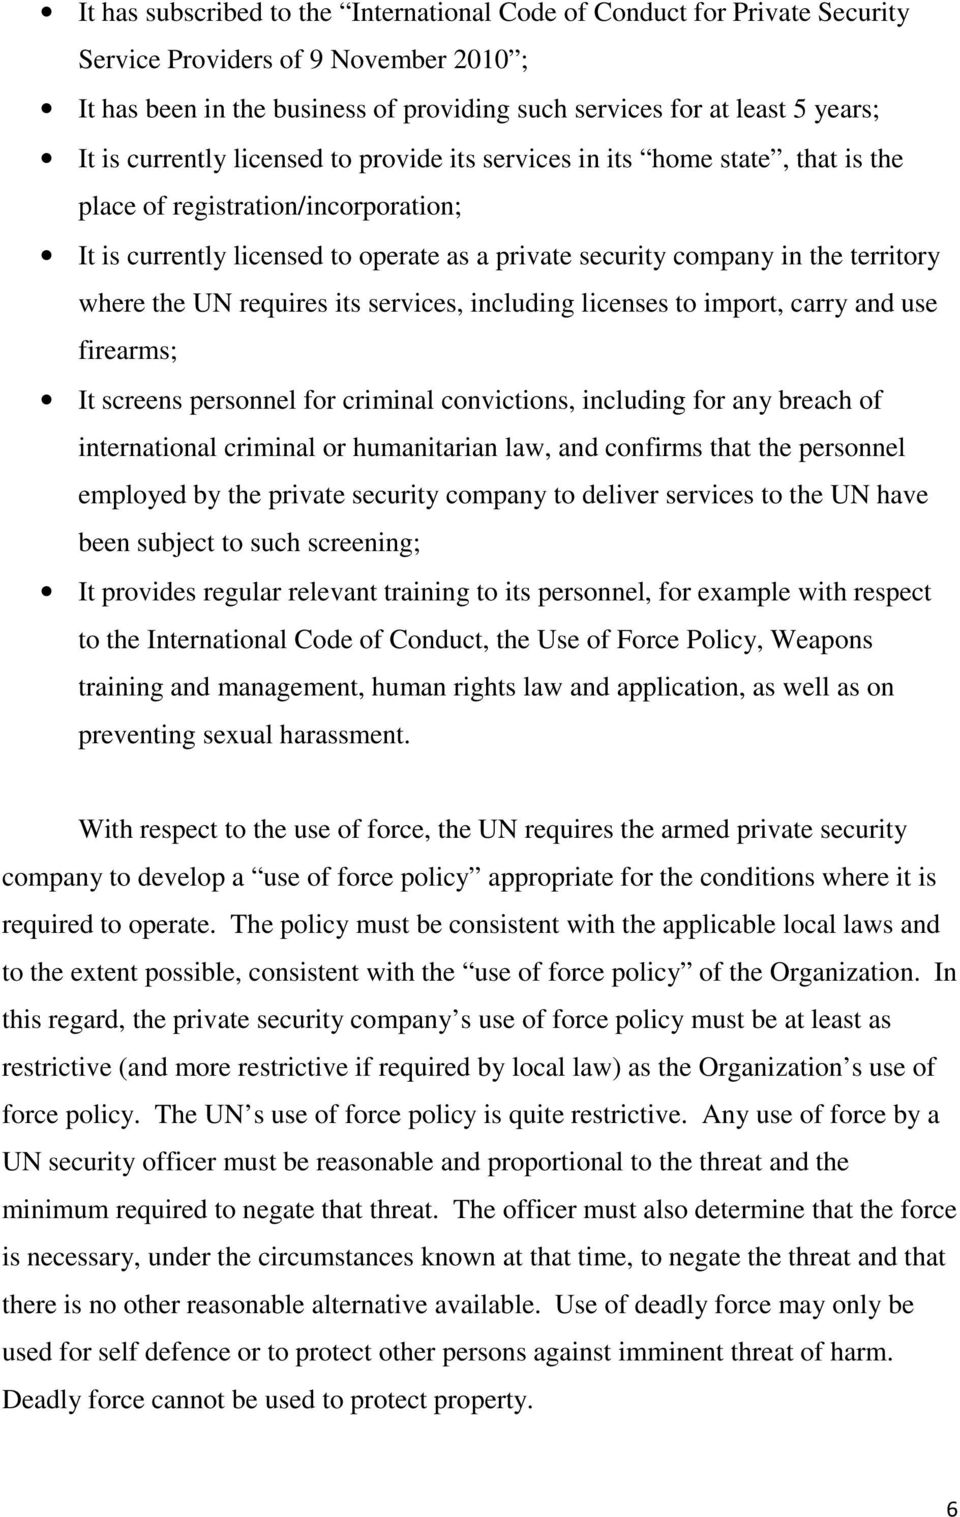 the UN requires its services, including licenses to import, carry and use firearms; It screens personnel for criminal convictions, including for any breach of international criminal or humanitarian